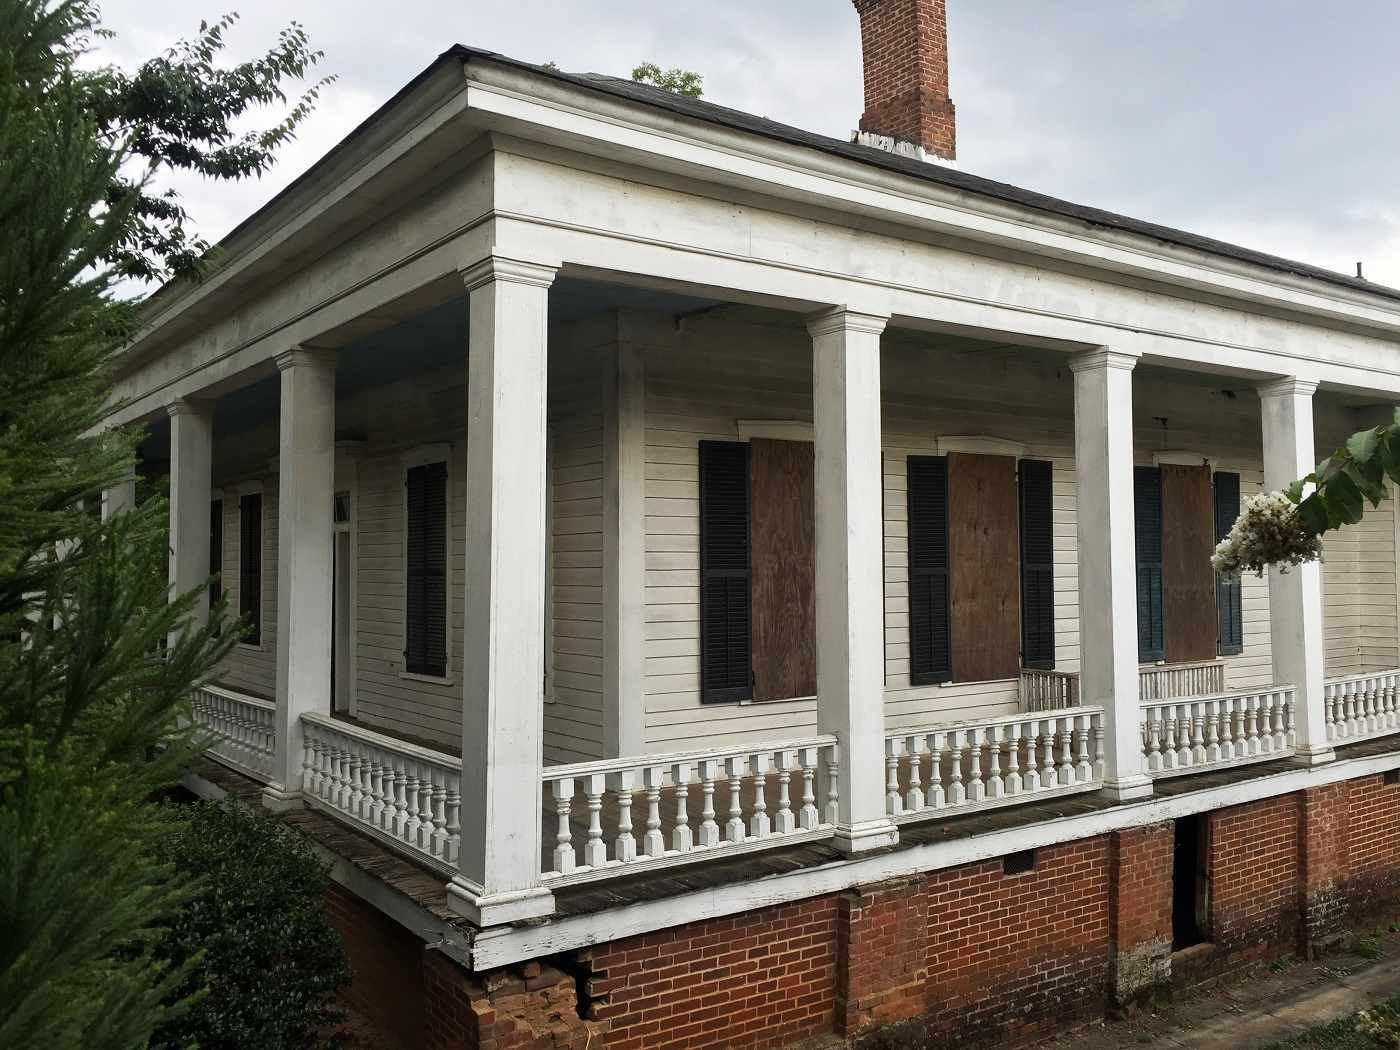 C 1850 1855 greek revival griffin ga old house dreams for Revival home